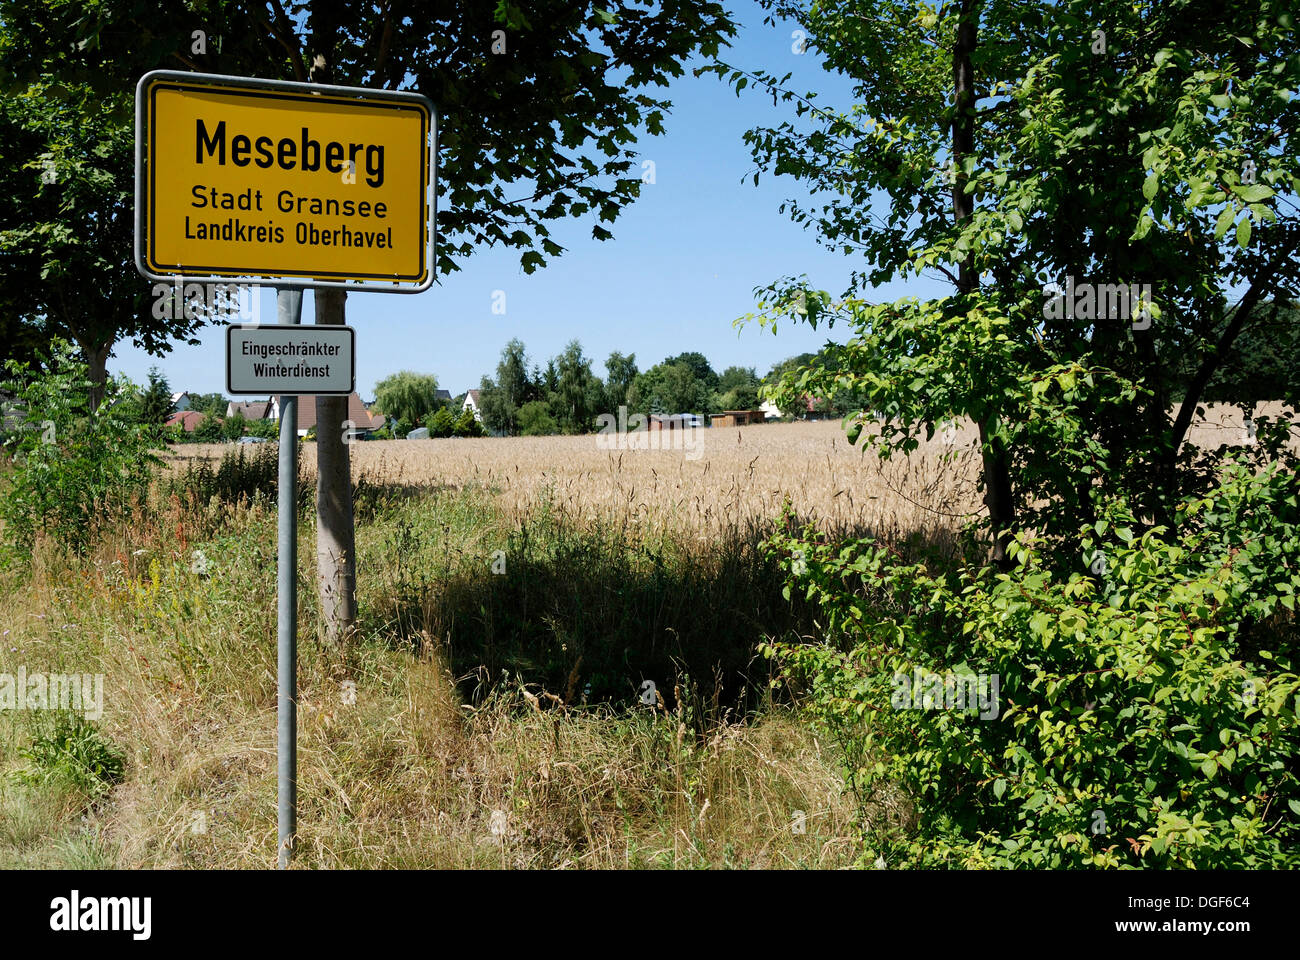 Signpost for Meseberg on the road to the Federal government guesthouse Meseberg Palace near Berlin. - Stock Image